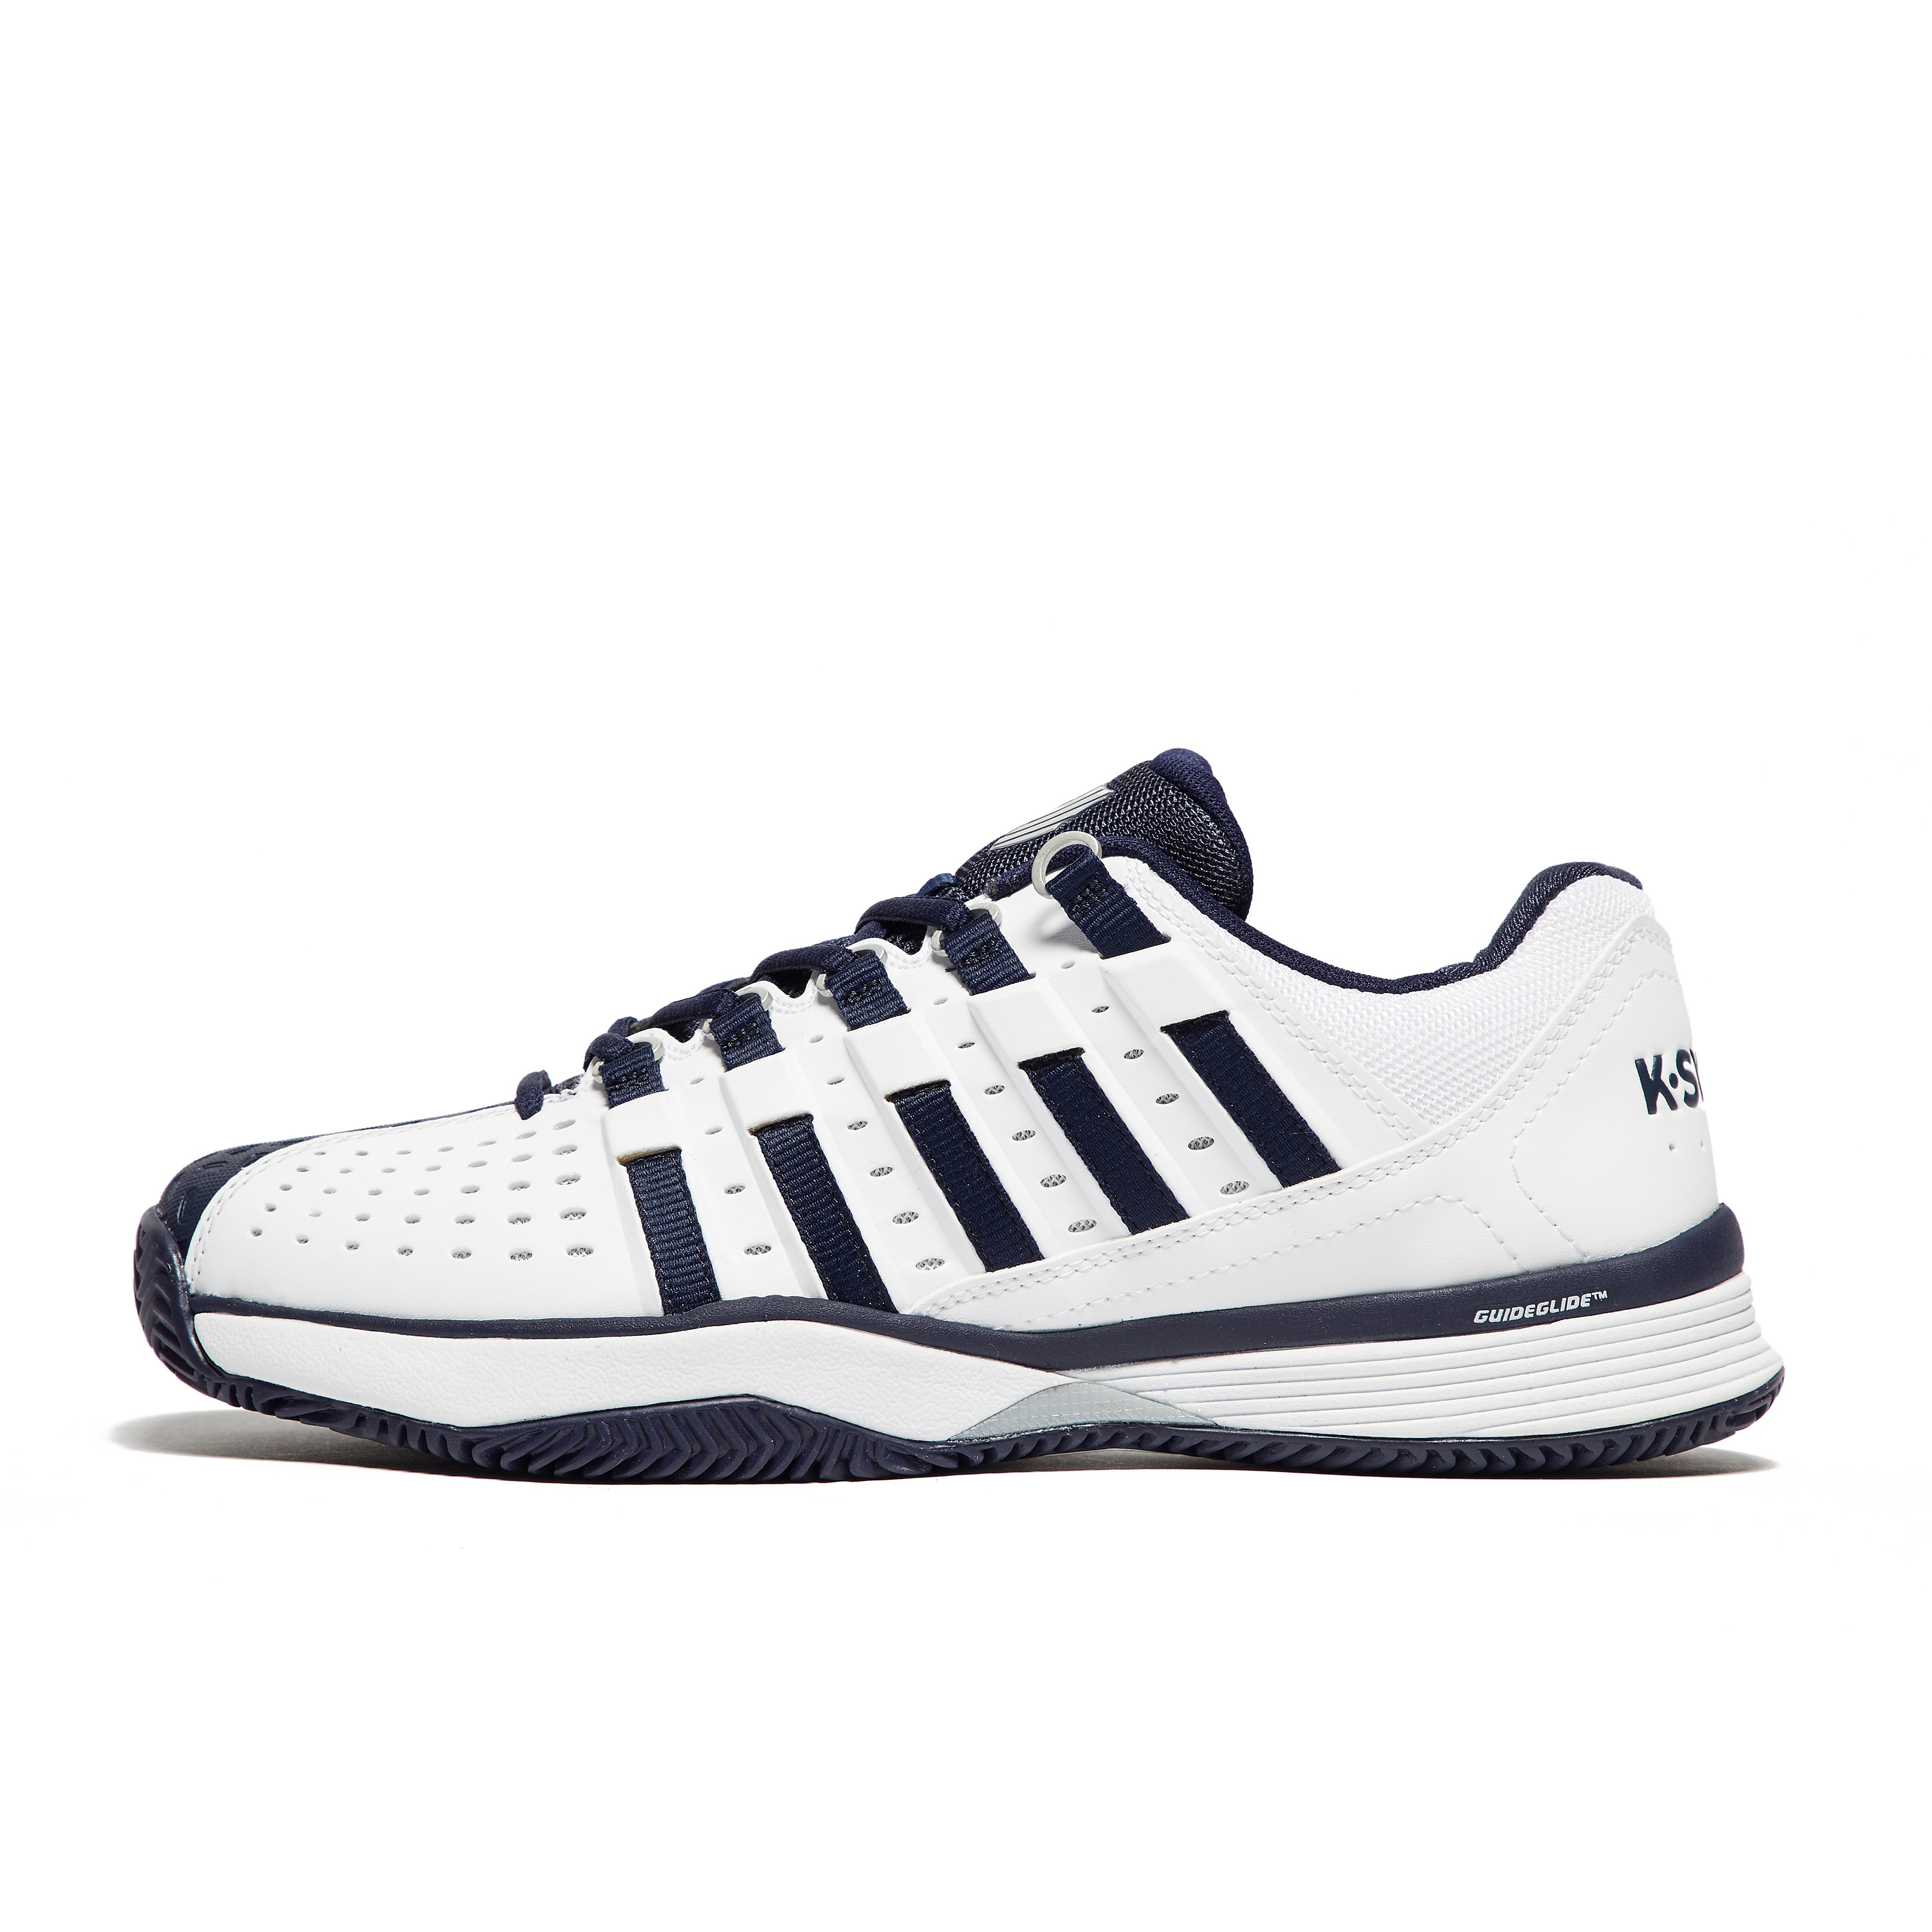 K-Swiss Hypermatch HB Men's Tennis Shoes